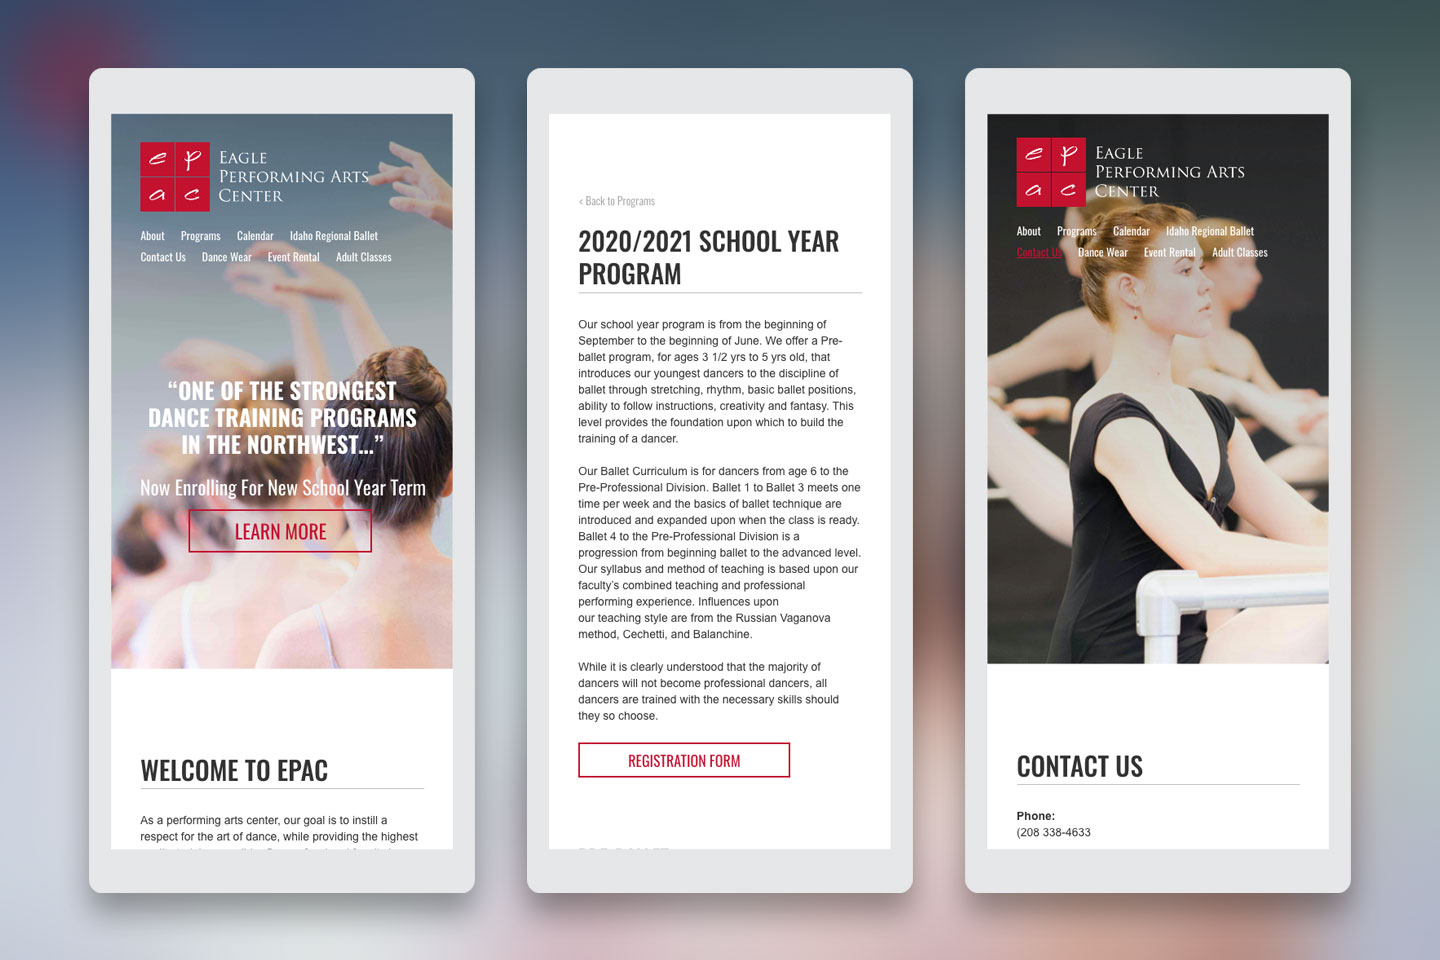 Eagle Performing Arts Center website mock-ups for mobile devices